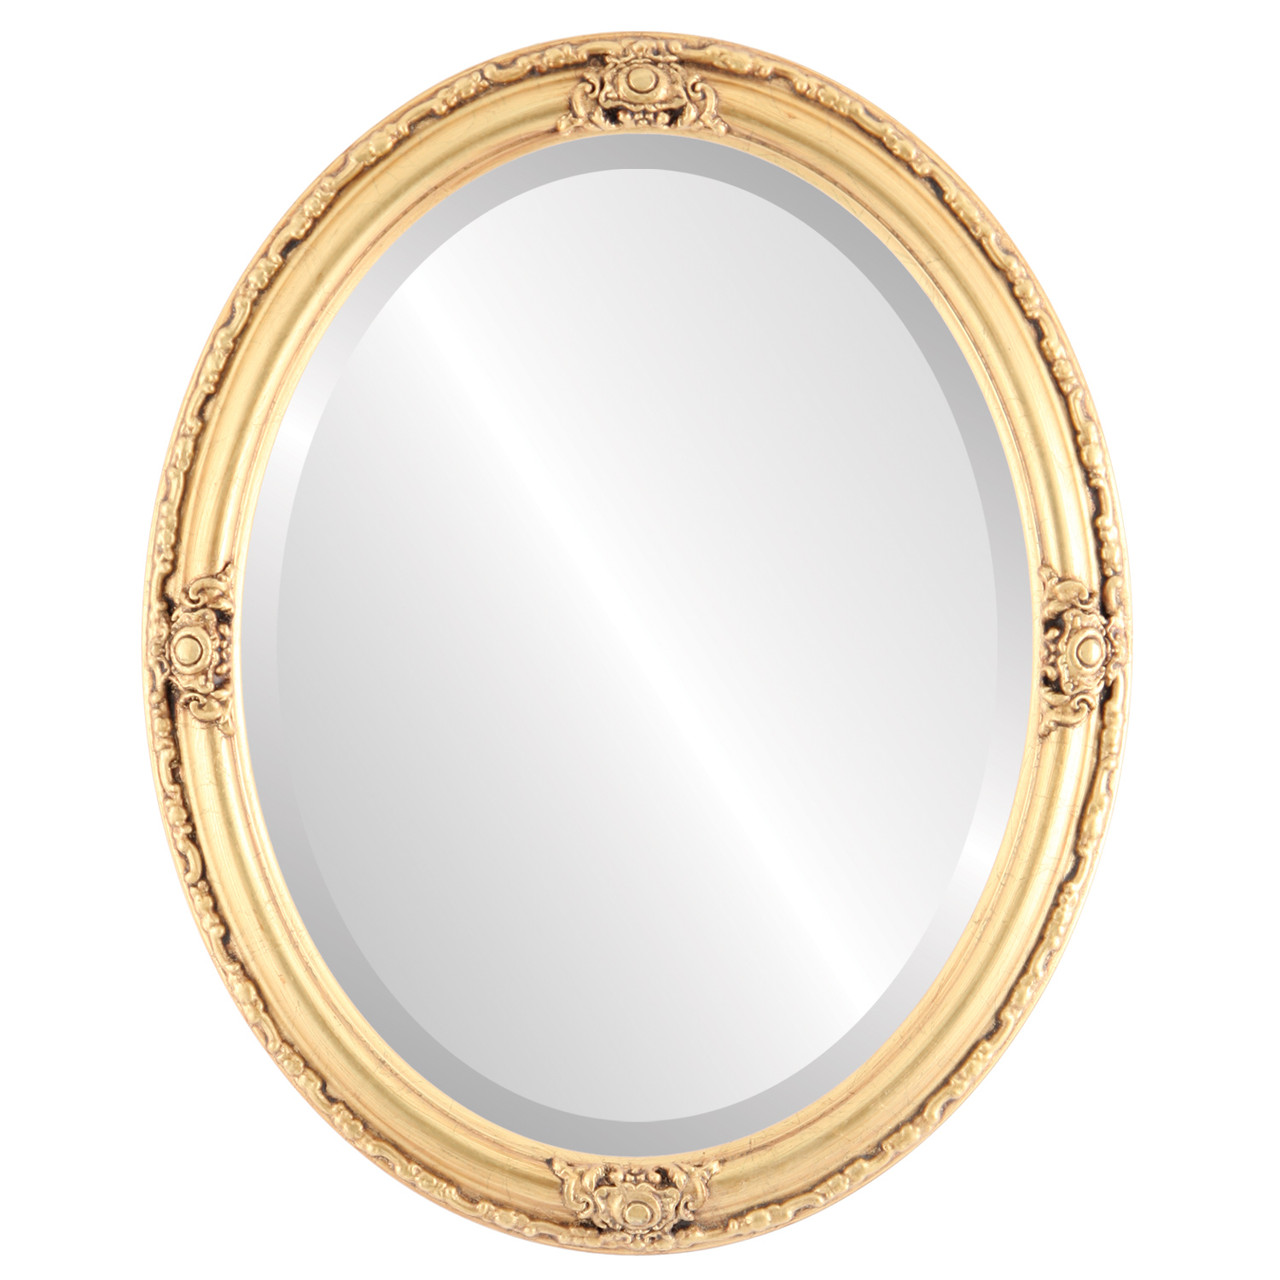 Gold Oval Mirrors From 164 Jefferson Gold Leaf Free Shipping